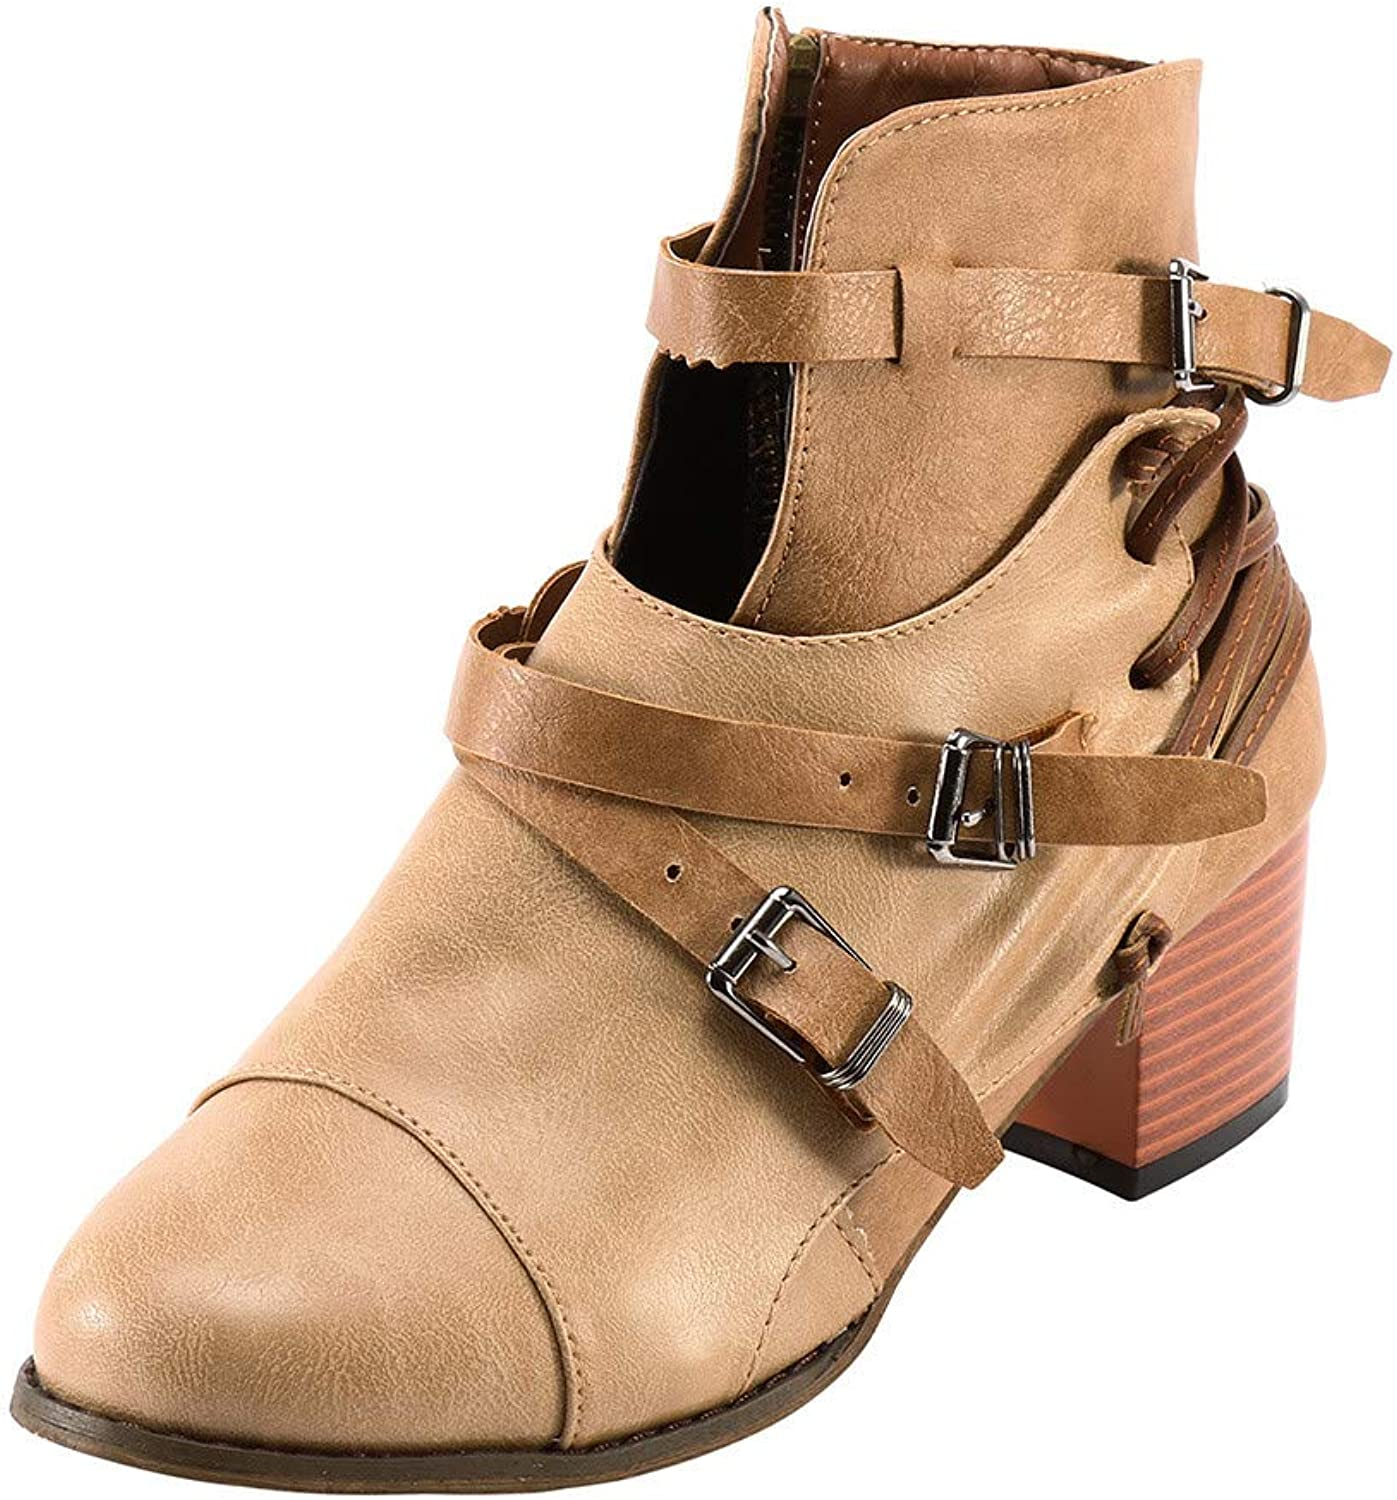 Women's Fighting Buckle Strap Side Zipper Tactical Impossible Complex Design Ankle Boots shoes